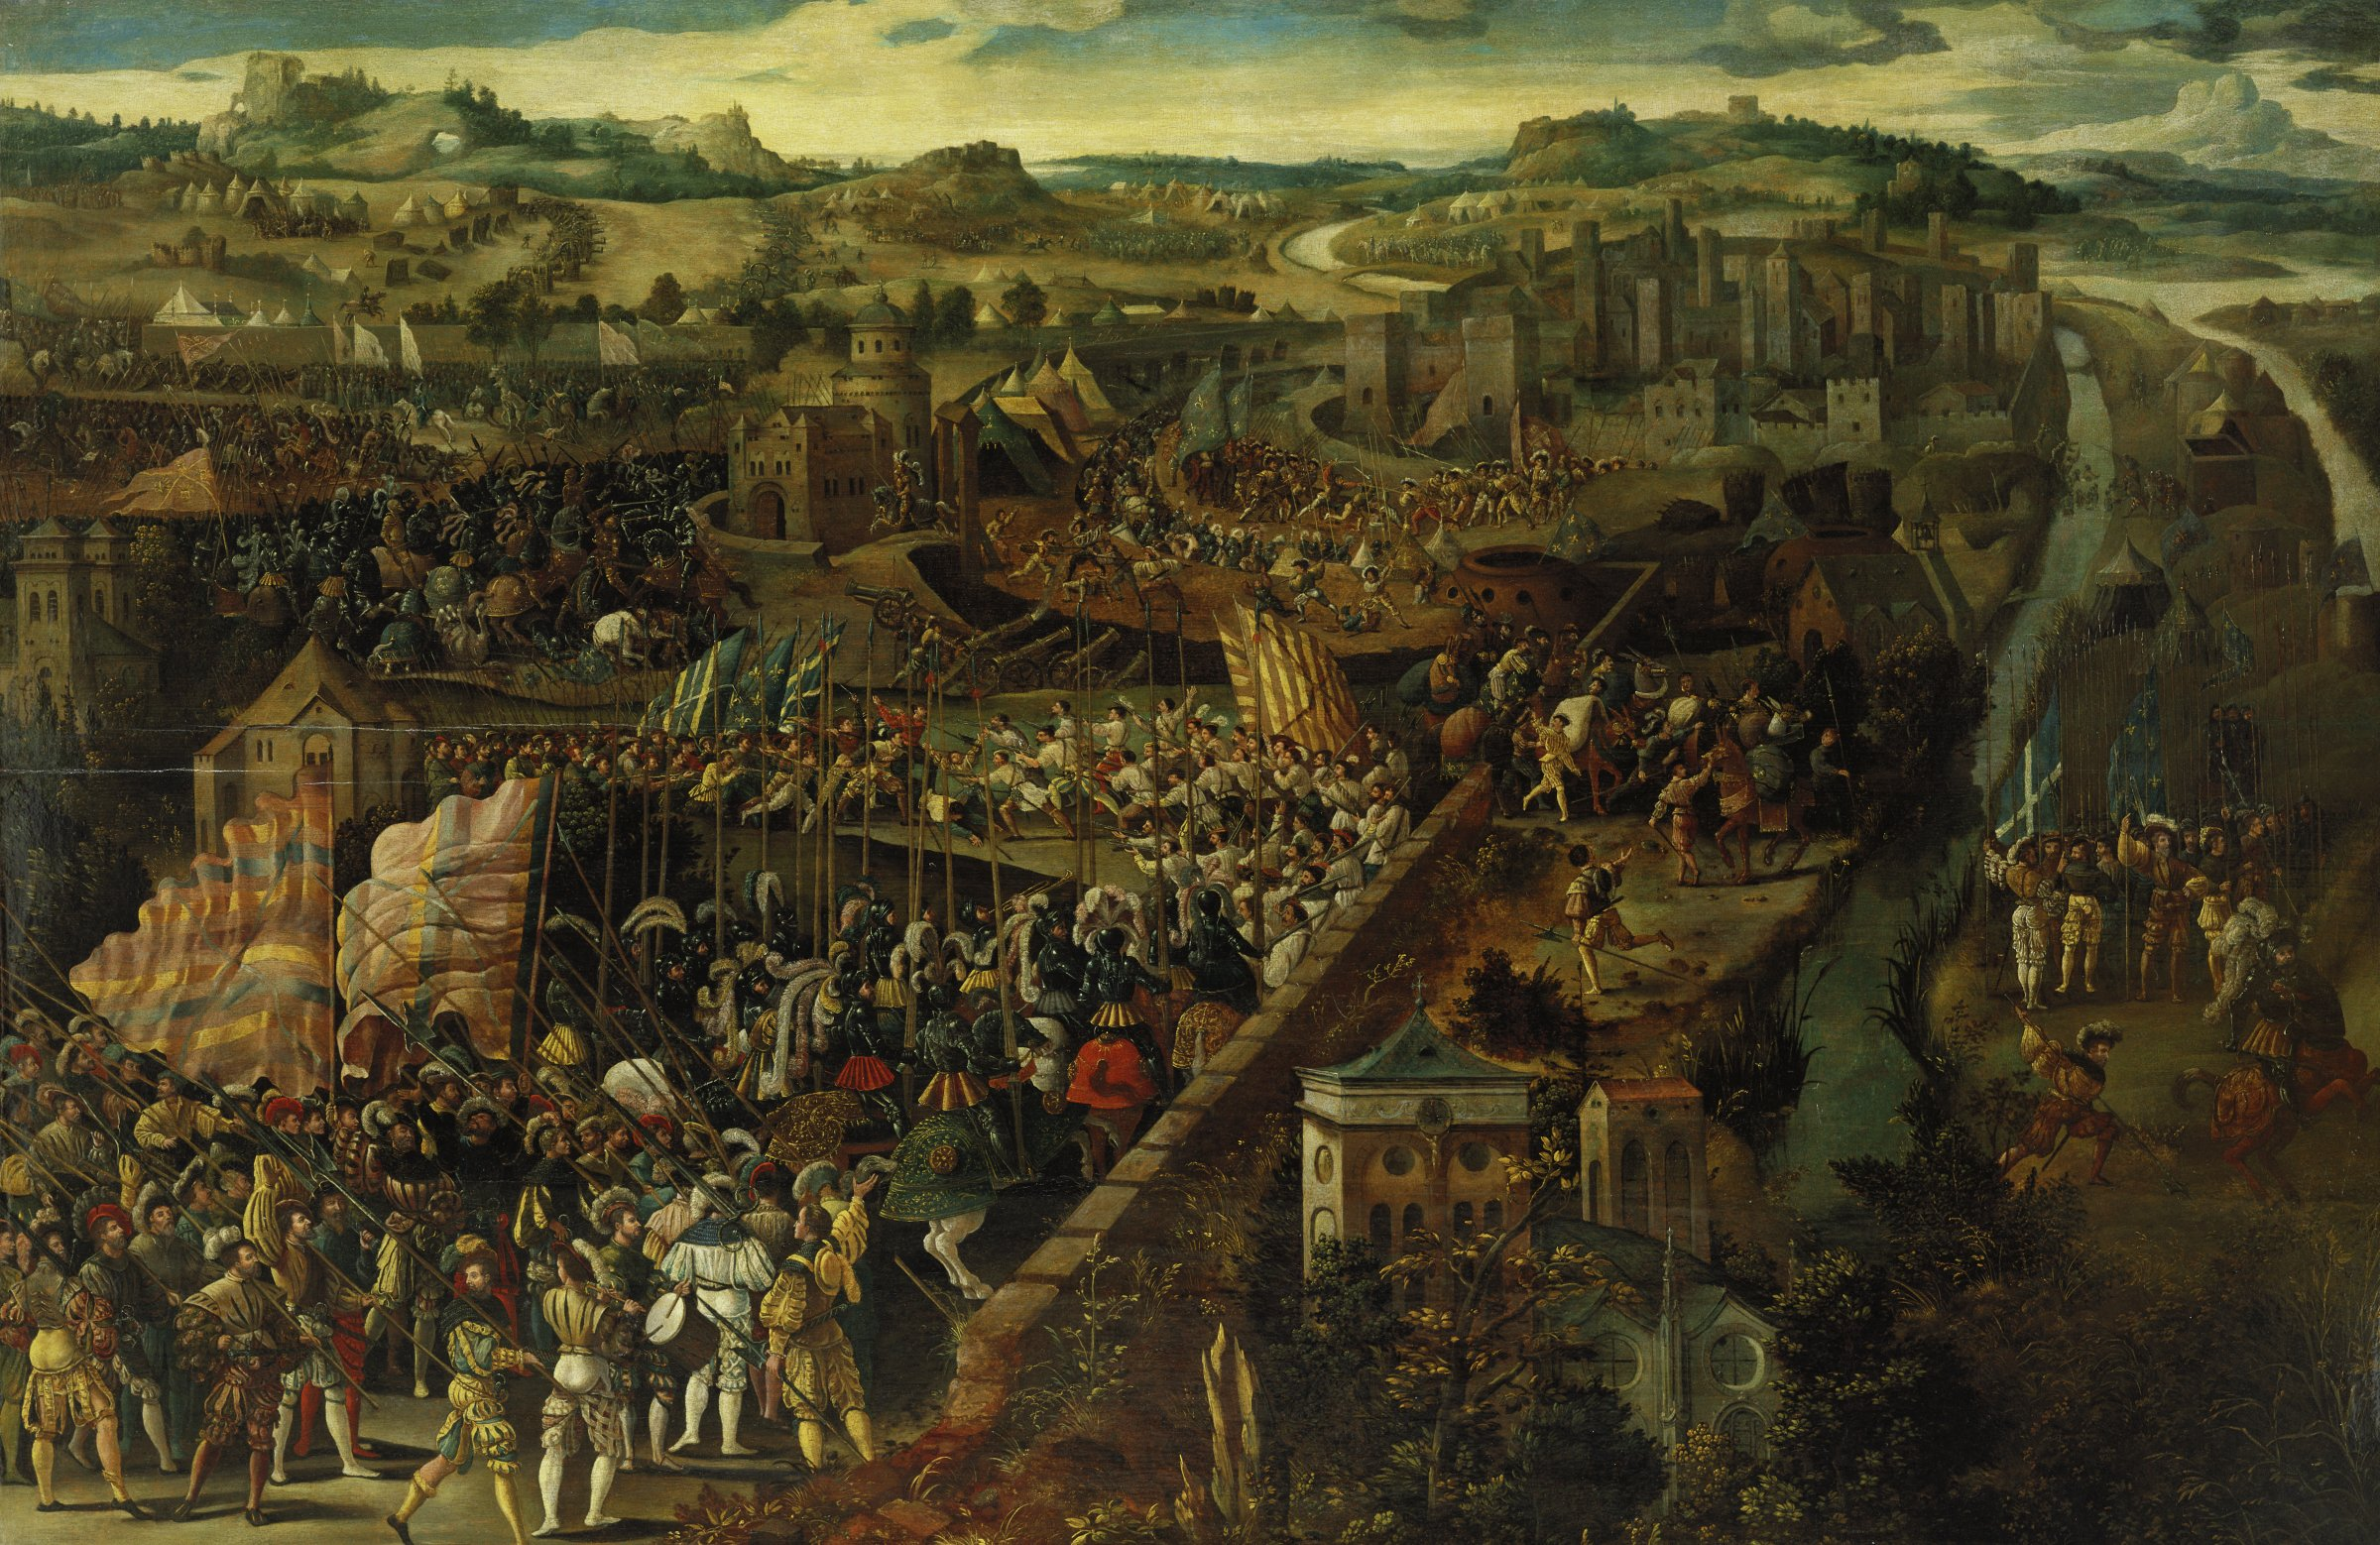 This painting captures a dramatic moment in a battle that took place in the town of Pavia in northern Italy where in 1525 the forces of the Hapsburg ruler Charles V, carrying pikes in the foreground, defeated the invading army of the French king, Francis I. Depicted from an aerial perspective, soldiers clash among the walls and building of the town. Flags wave, cannons smoke, and horses rear.